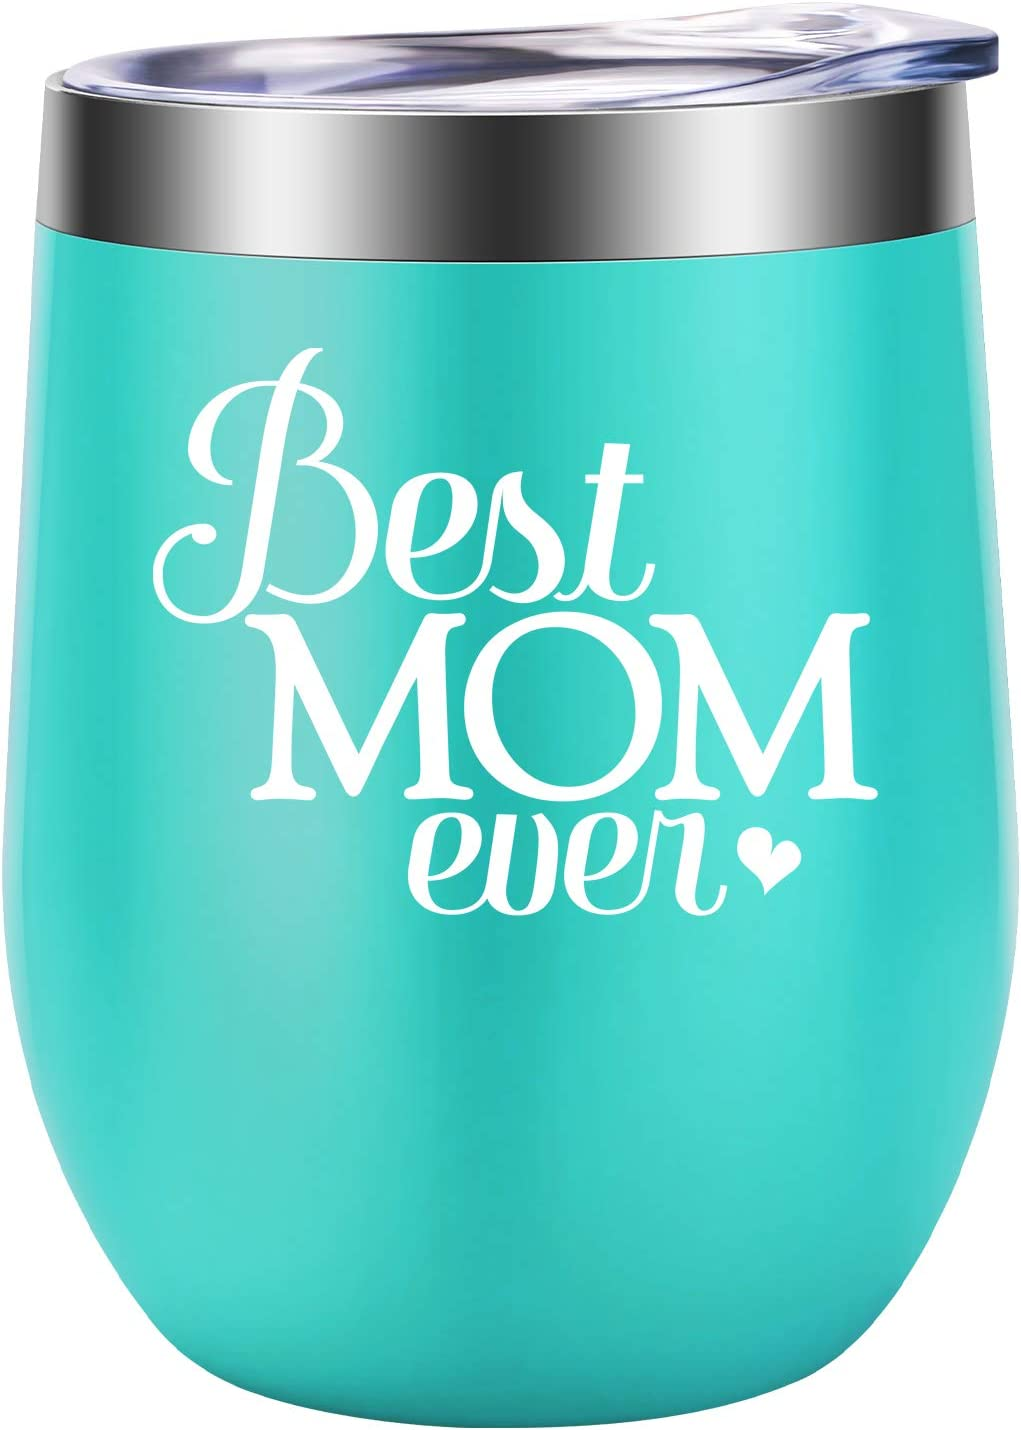 Gifts Inventory cleanup selling sale Opening large release sale for Mom - Christmas Ever Wife Best